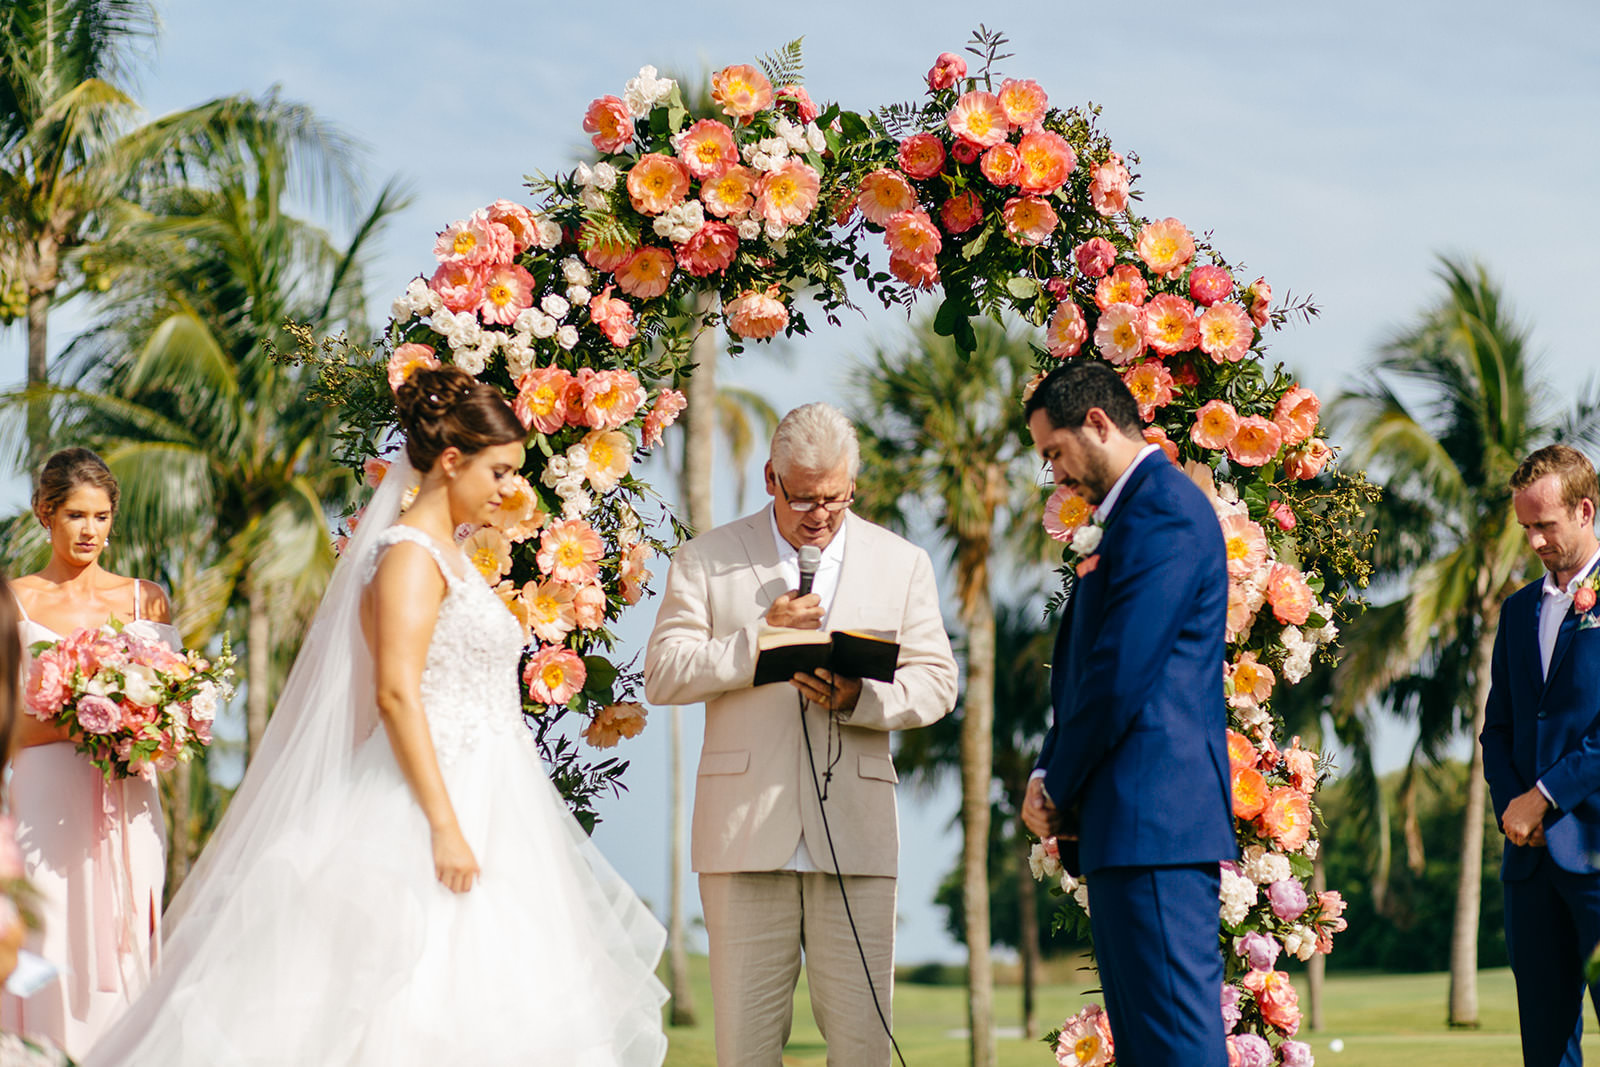 Bride and Groom Praying During Wedding Ceremony, Tropical Colorful Pink and Coral Floral and Palm Tree Leaves Lush Arch   Tampa Bay Wedding Planner NK Weddings